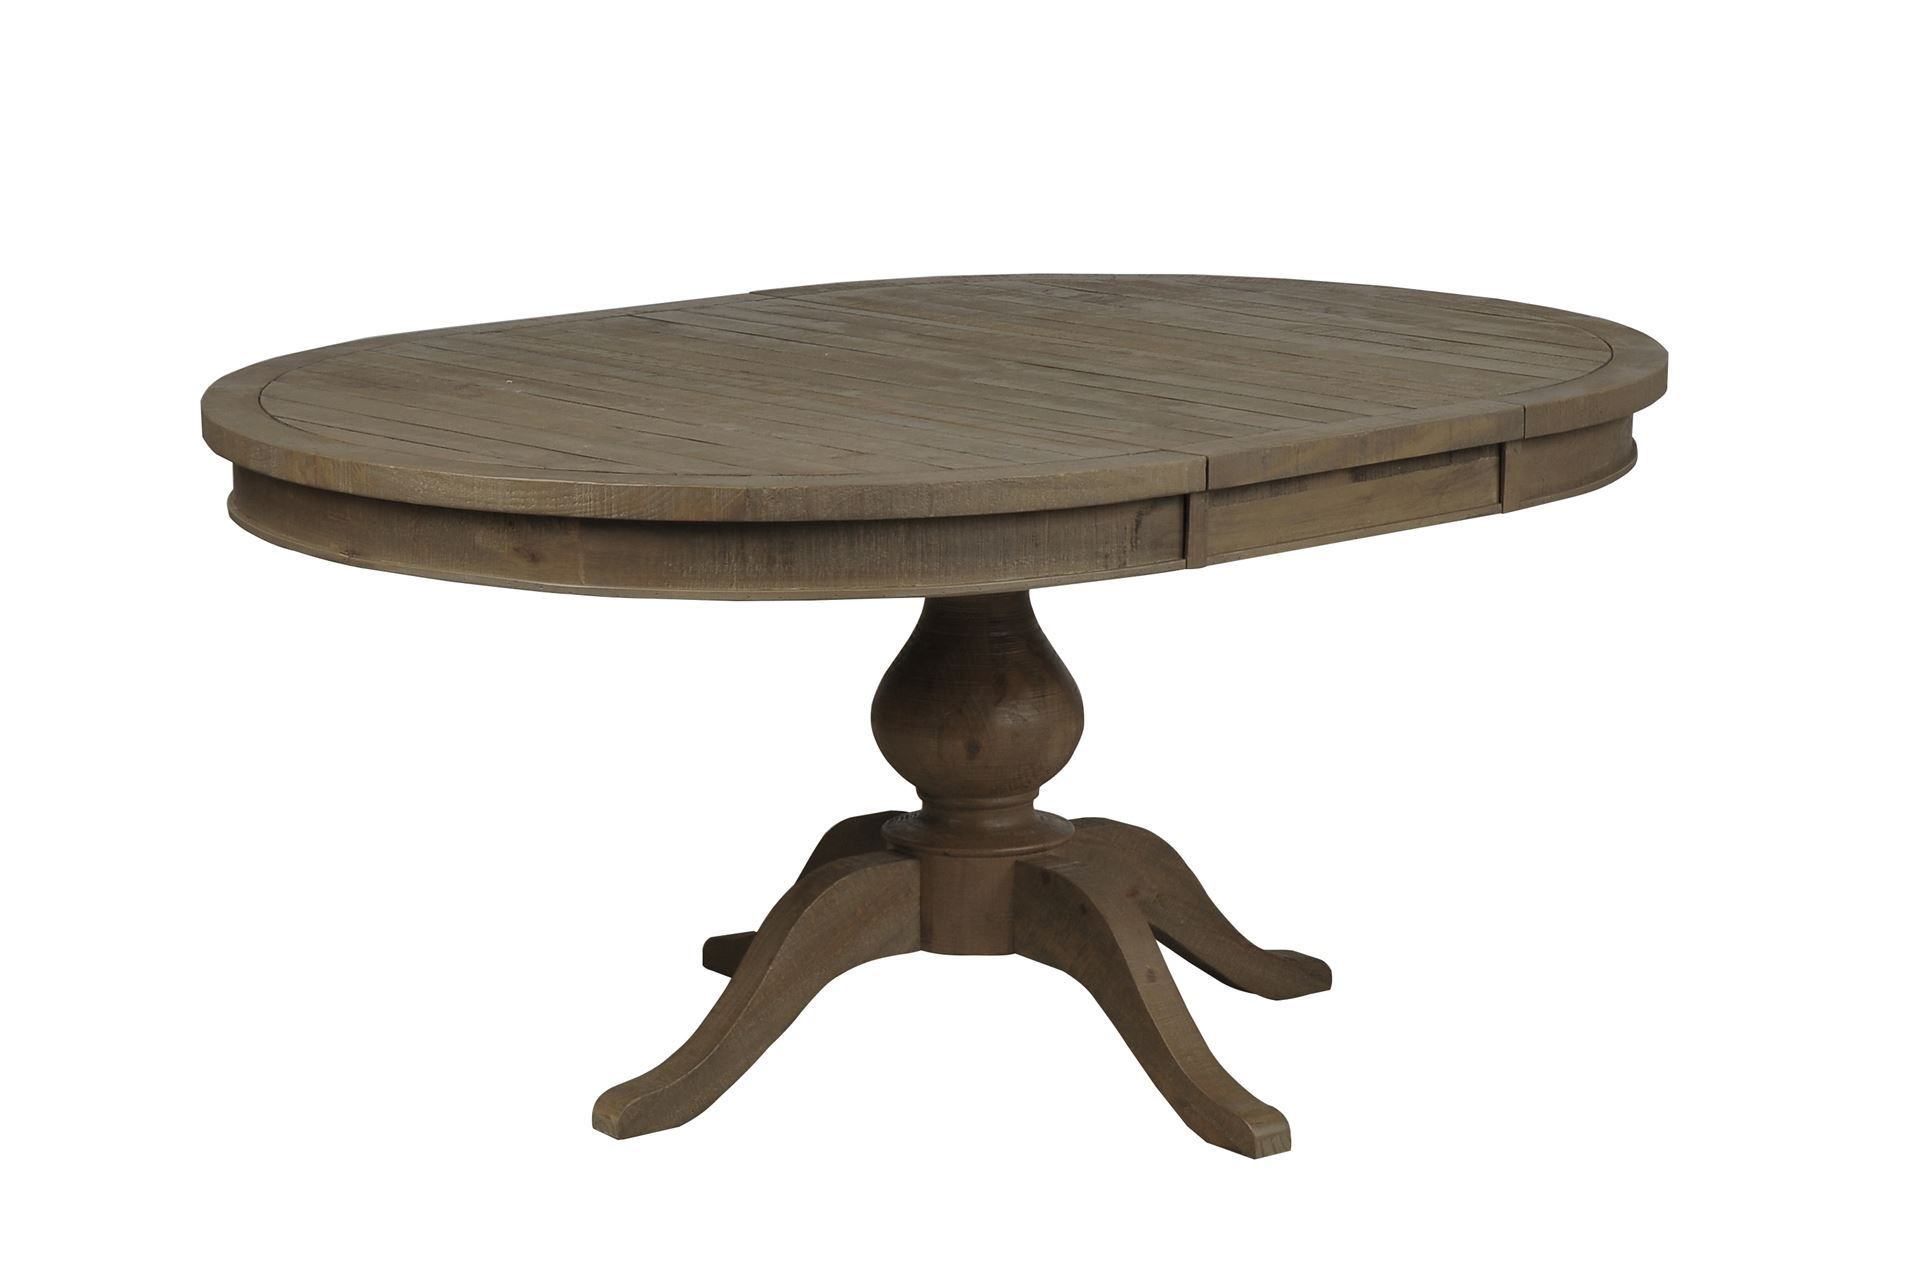 Beckett Round To Oval Dining Table  Living Spaces$475 Table Only Inspiration Living Spaces Dining Room Decorating Design